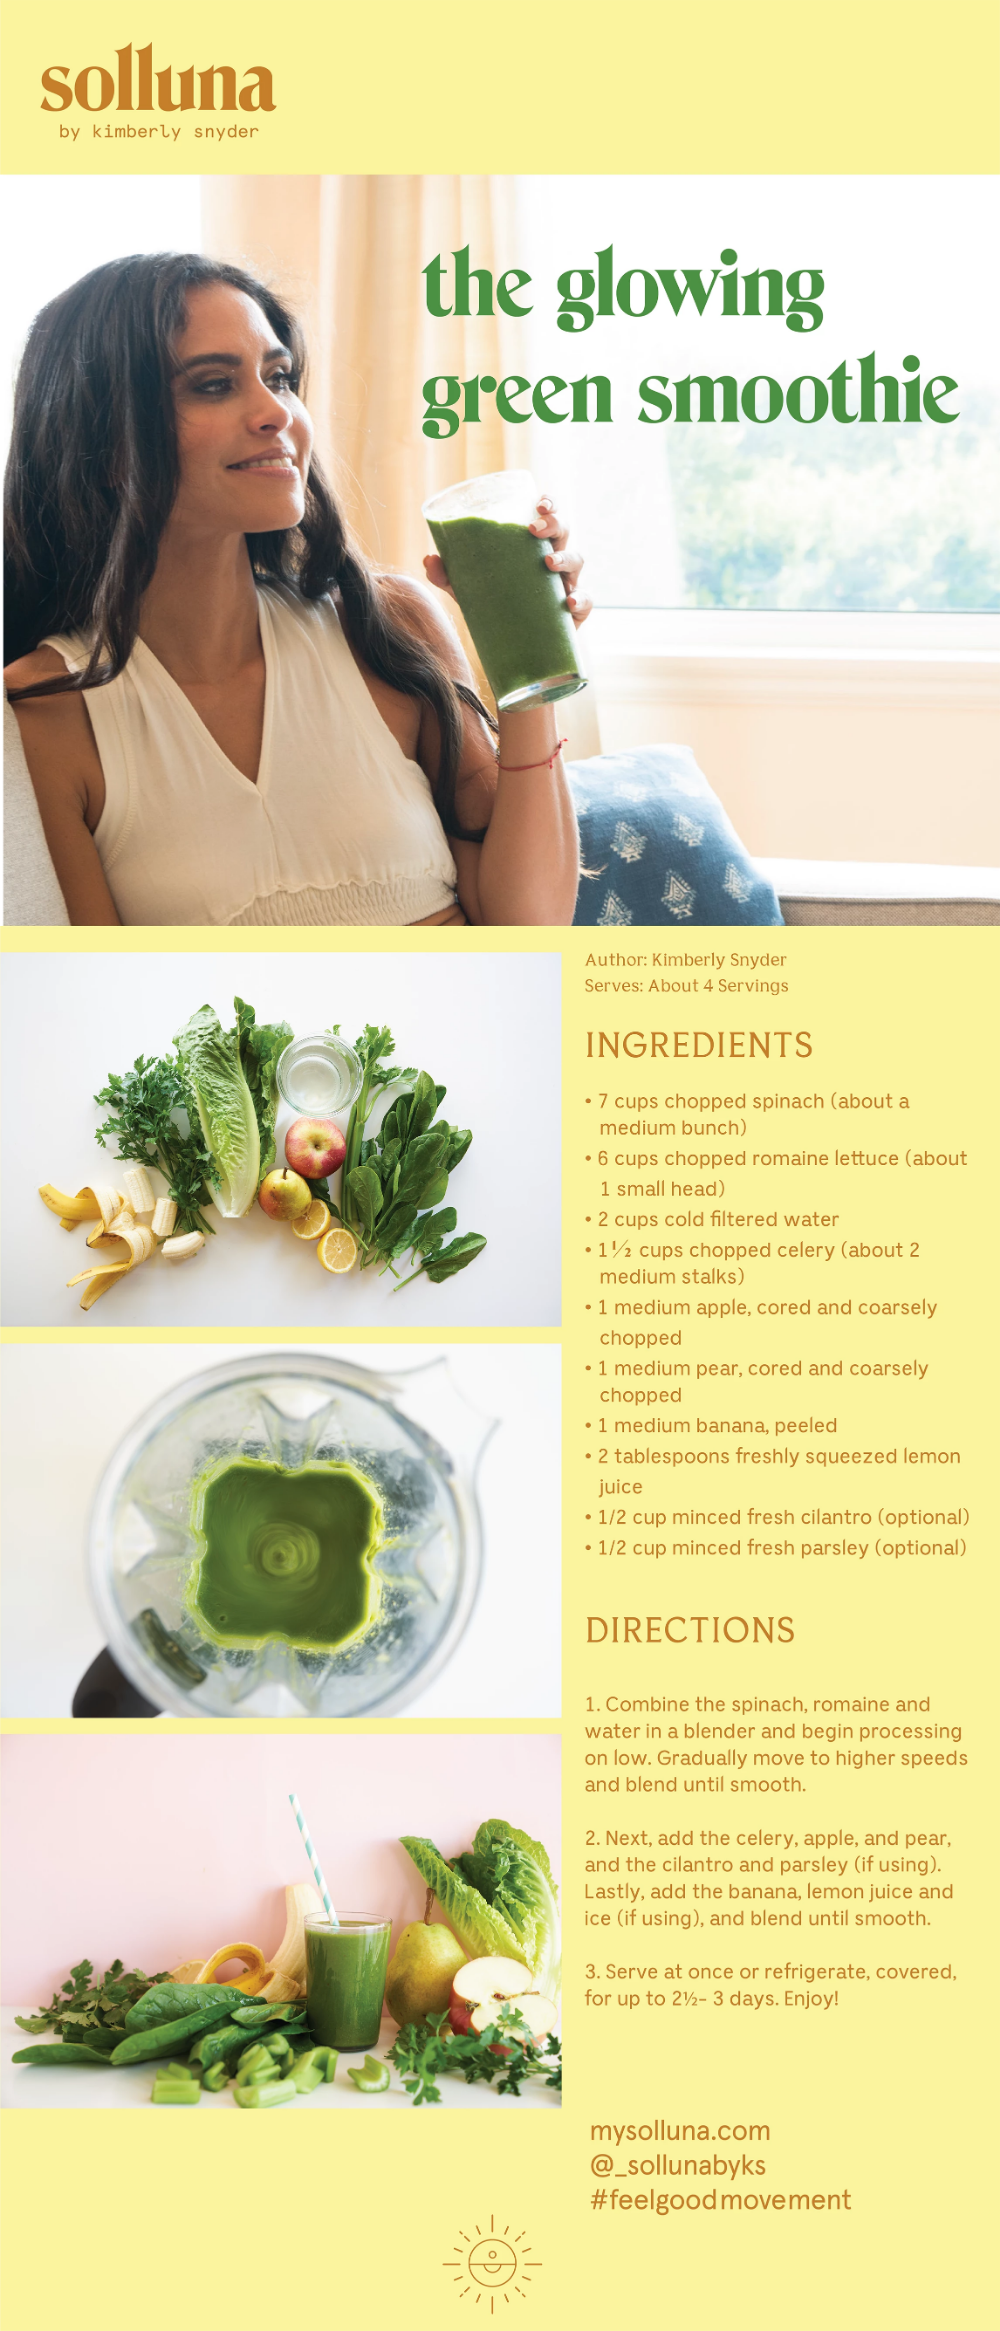 Glowing Green Smoothie Solluna By Kimberly Snyder